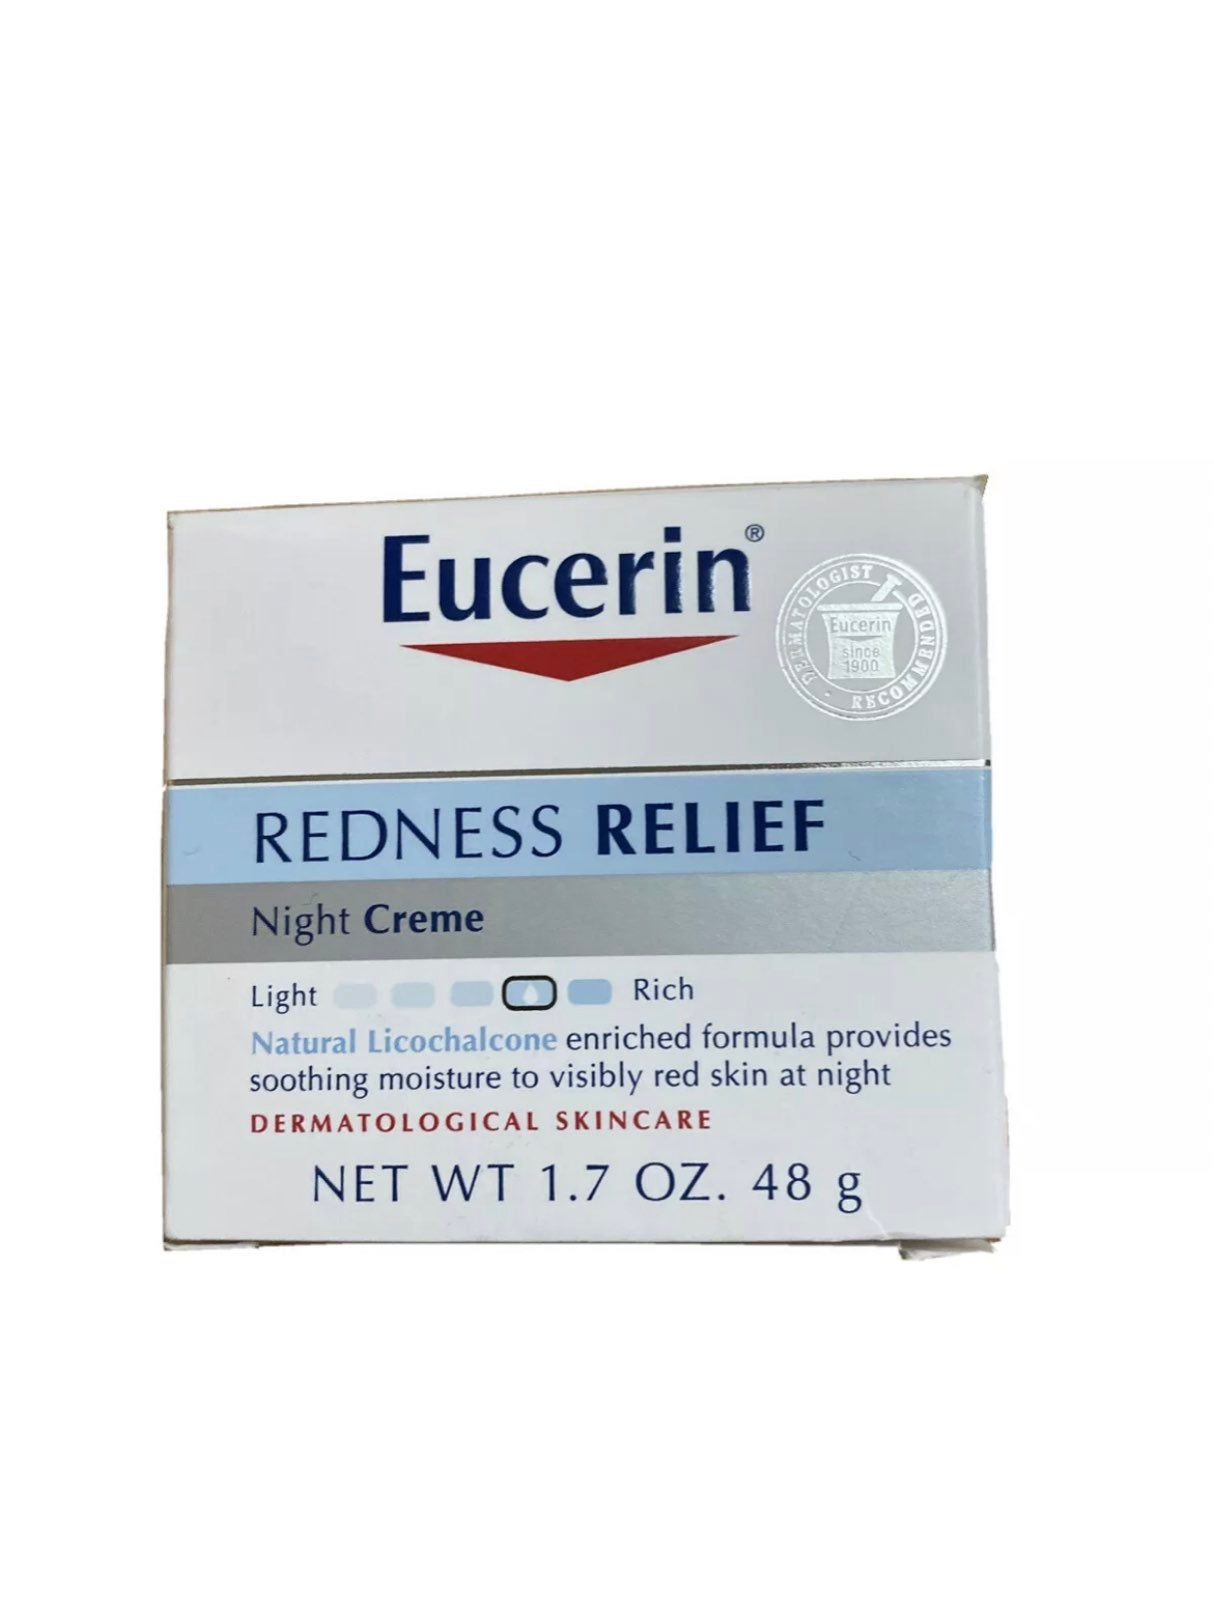 Eucerin Redness Relief Night Creme, For